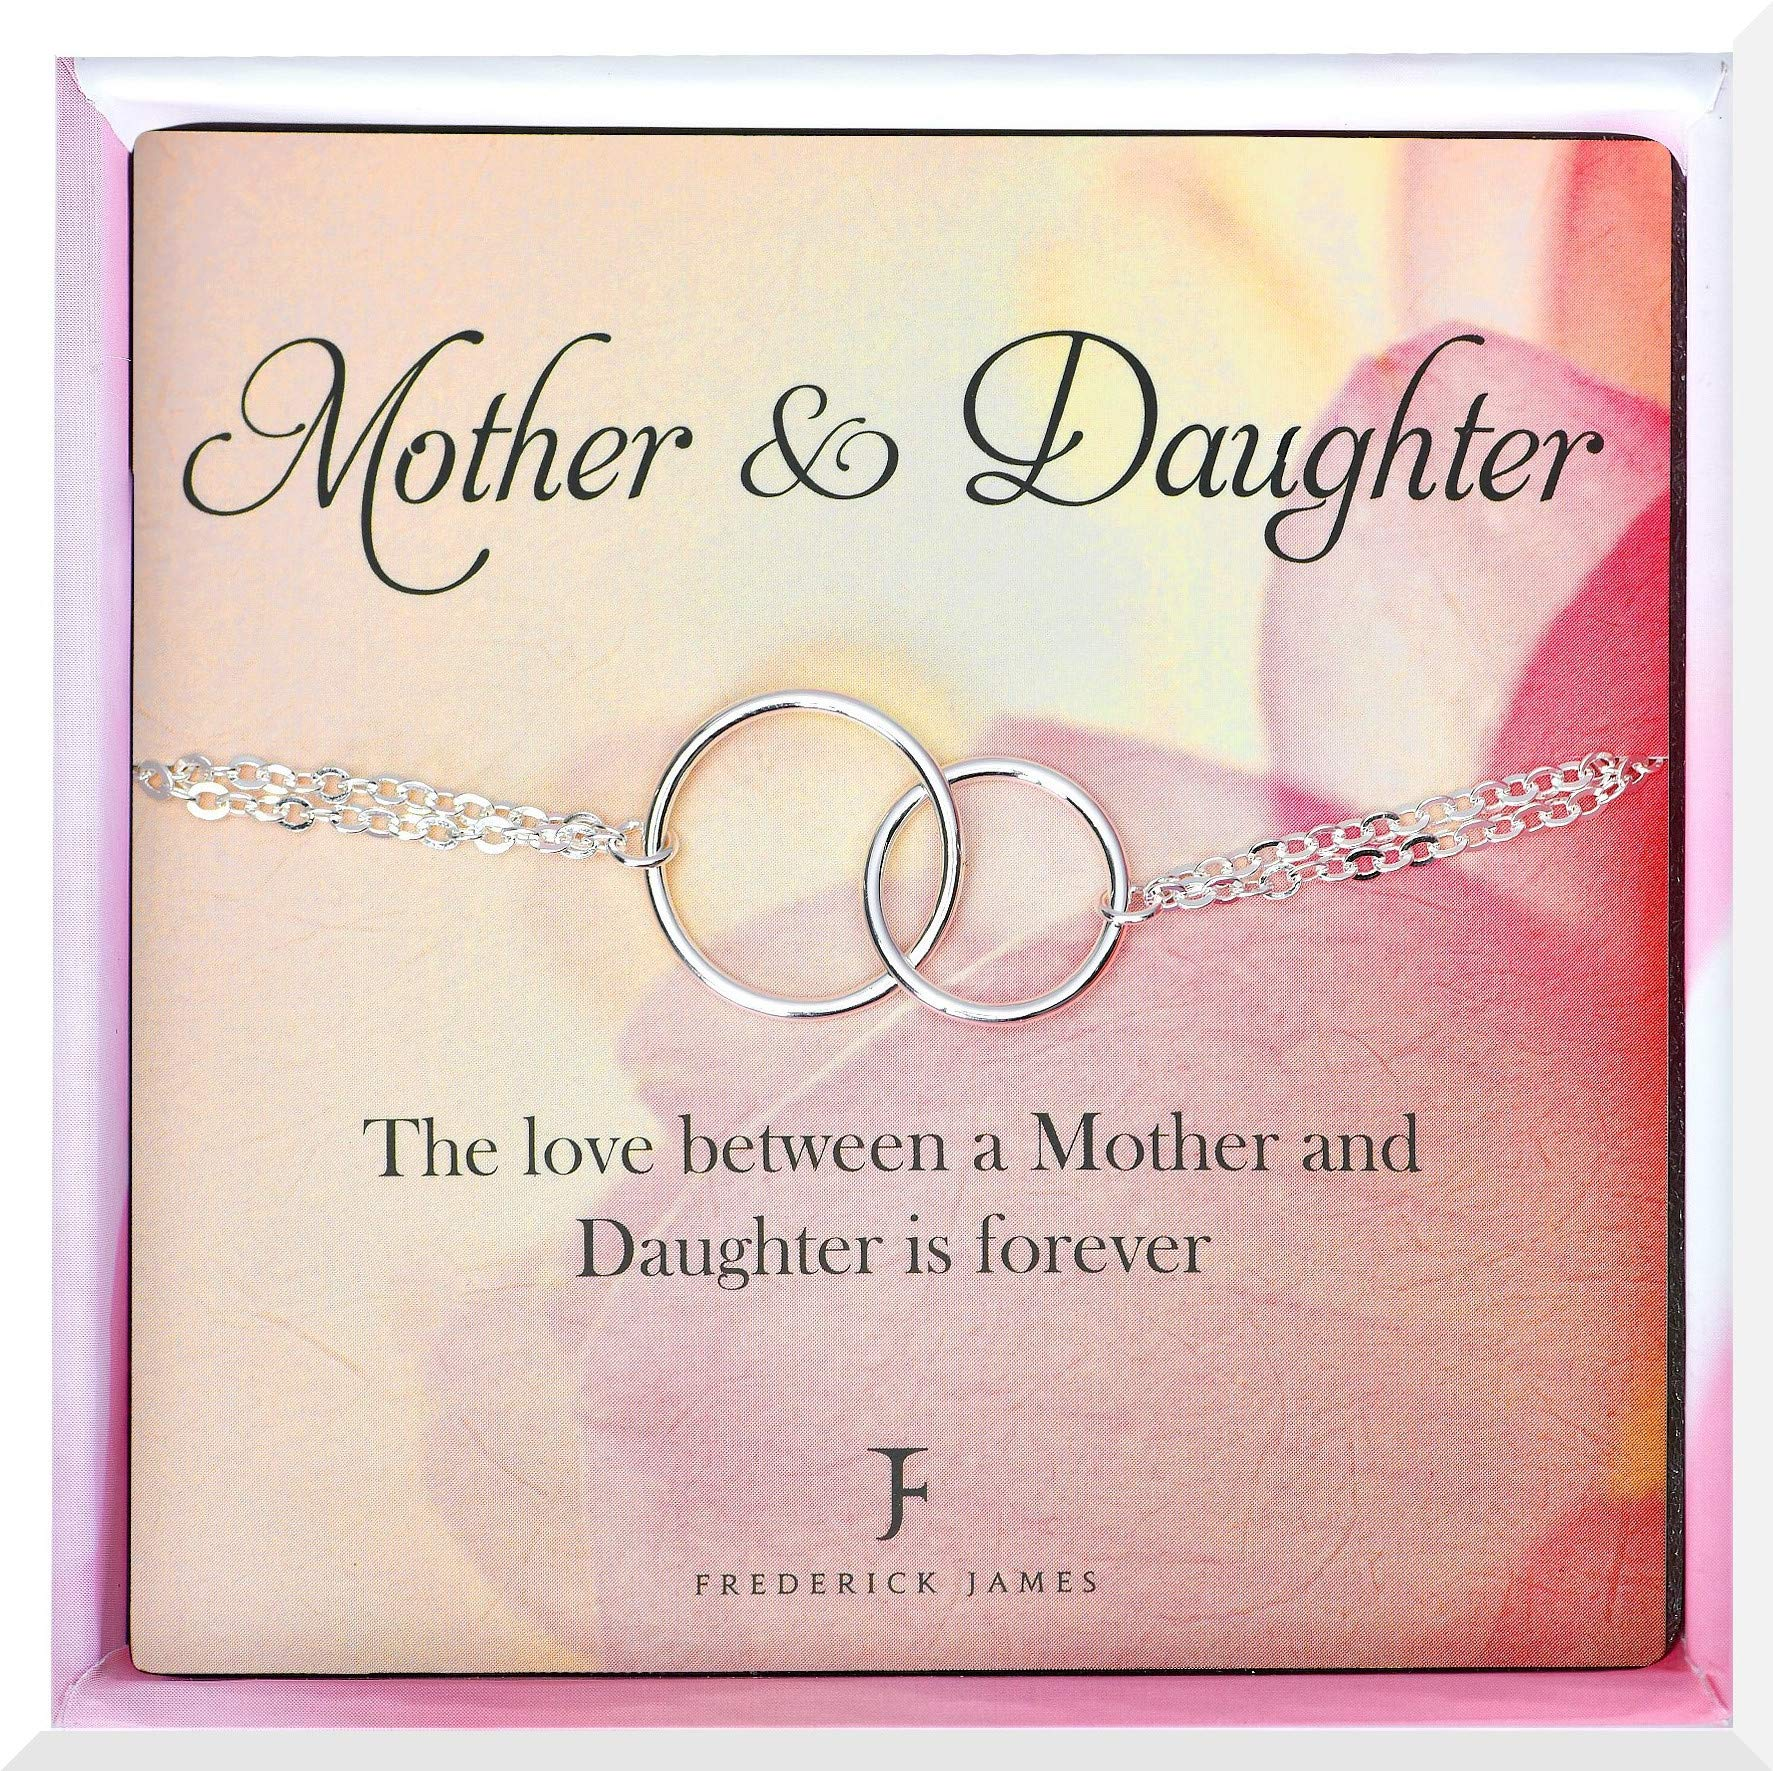 Mother Daughter Bracelets - Silver Infinity Circle Bracelet – Mothers Day Gifts | Mom & Daughter Birthday Jewelry | Beautiful Gift Box Included